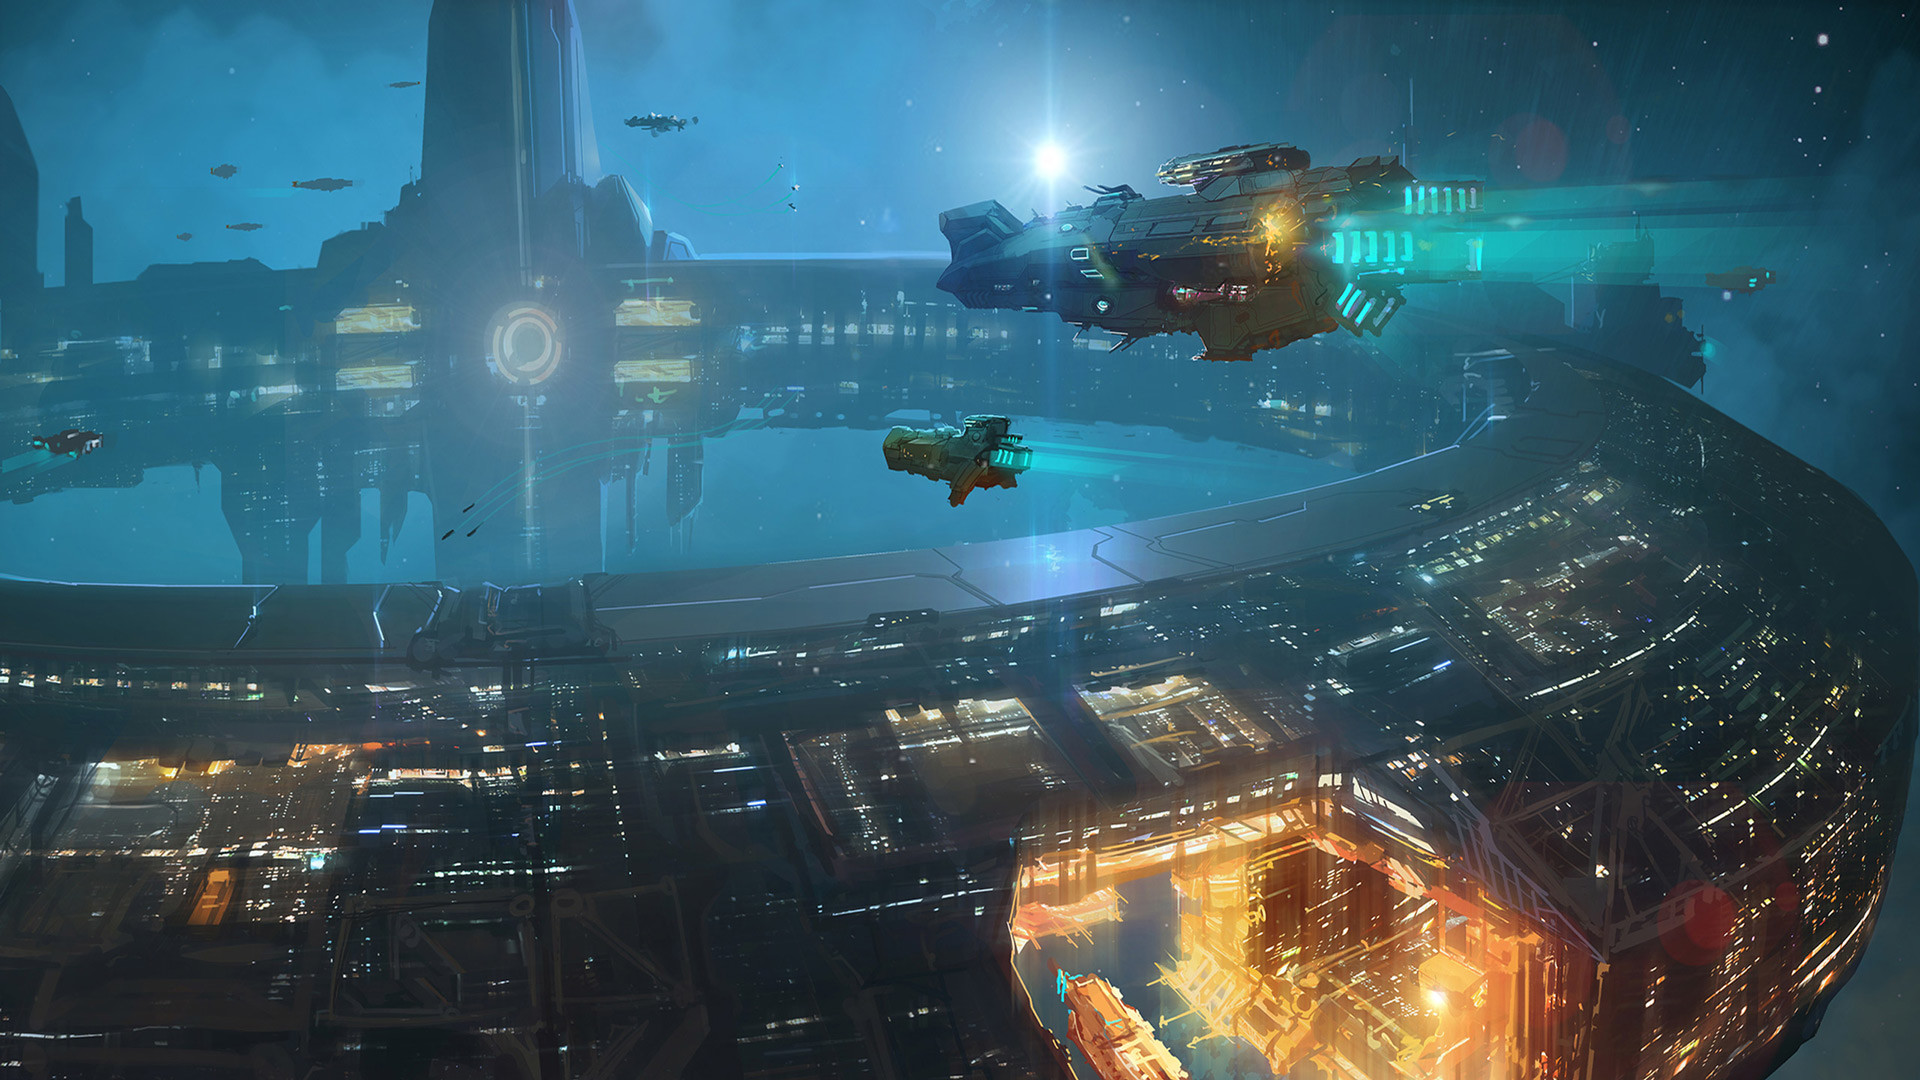 3093 best Fantasy and Sci-Fi Art images on Pinterest   Sci fi art, Concept  art and Sci fi